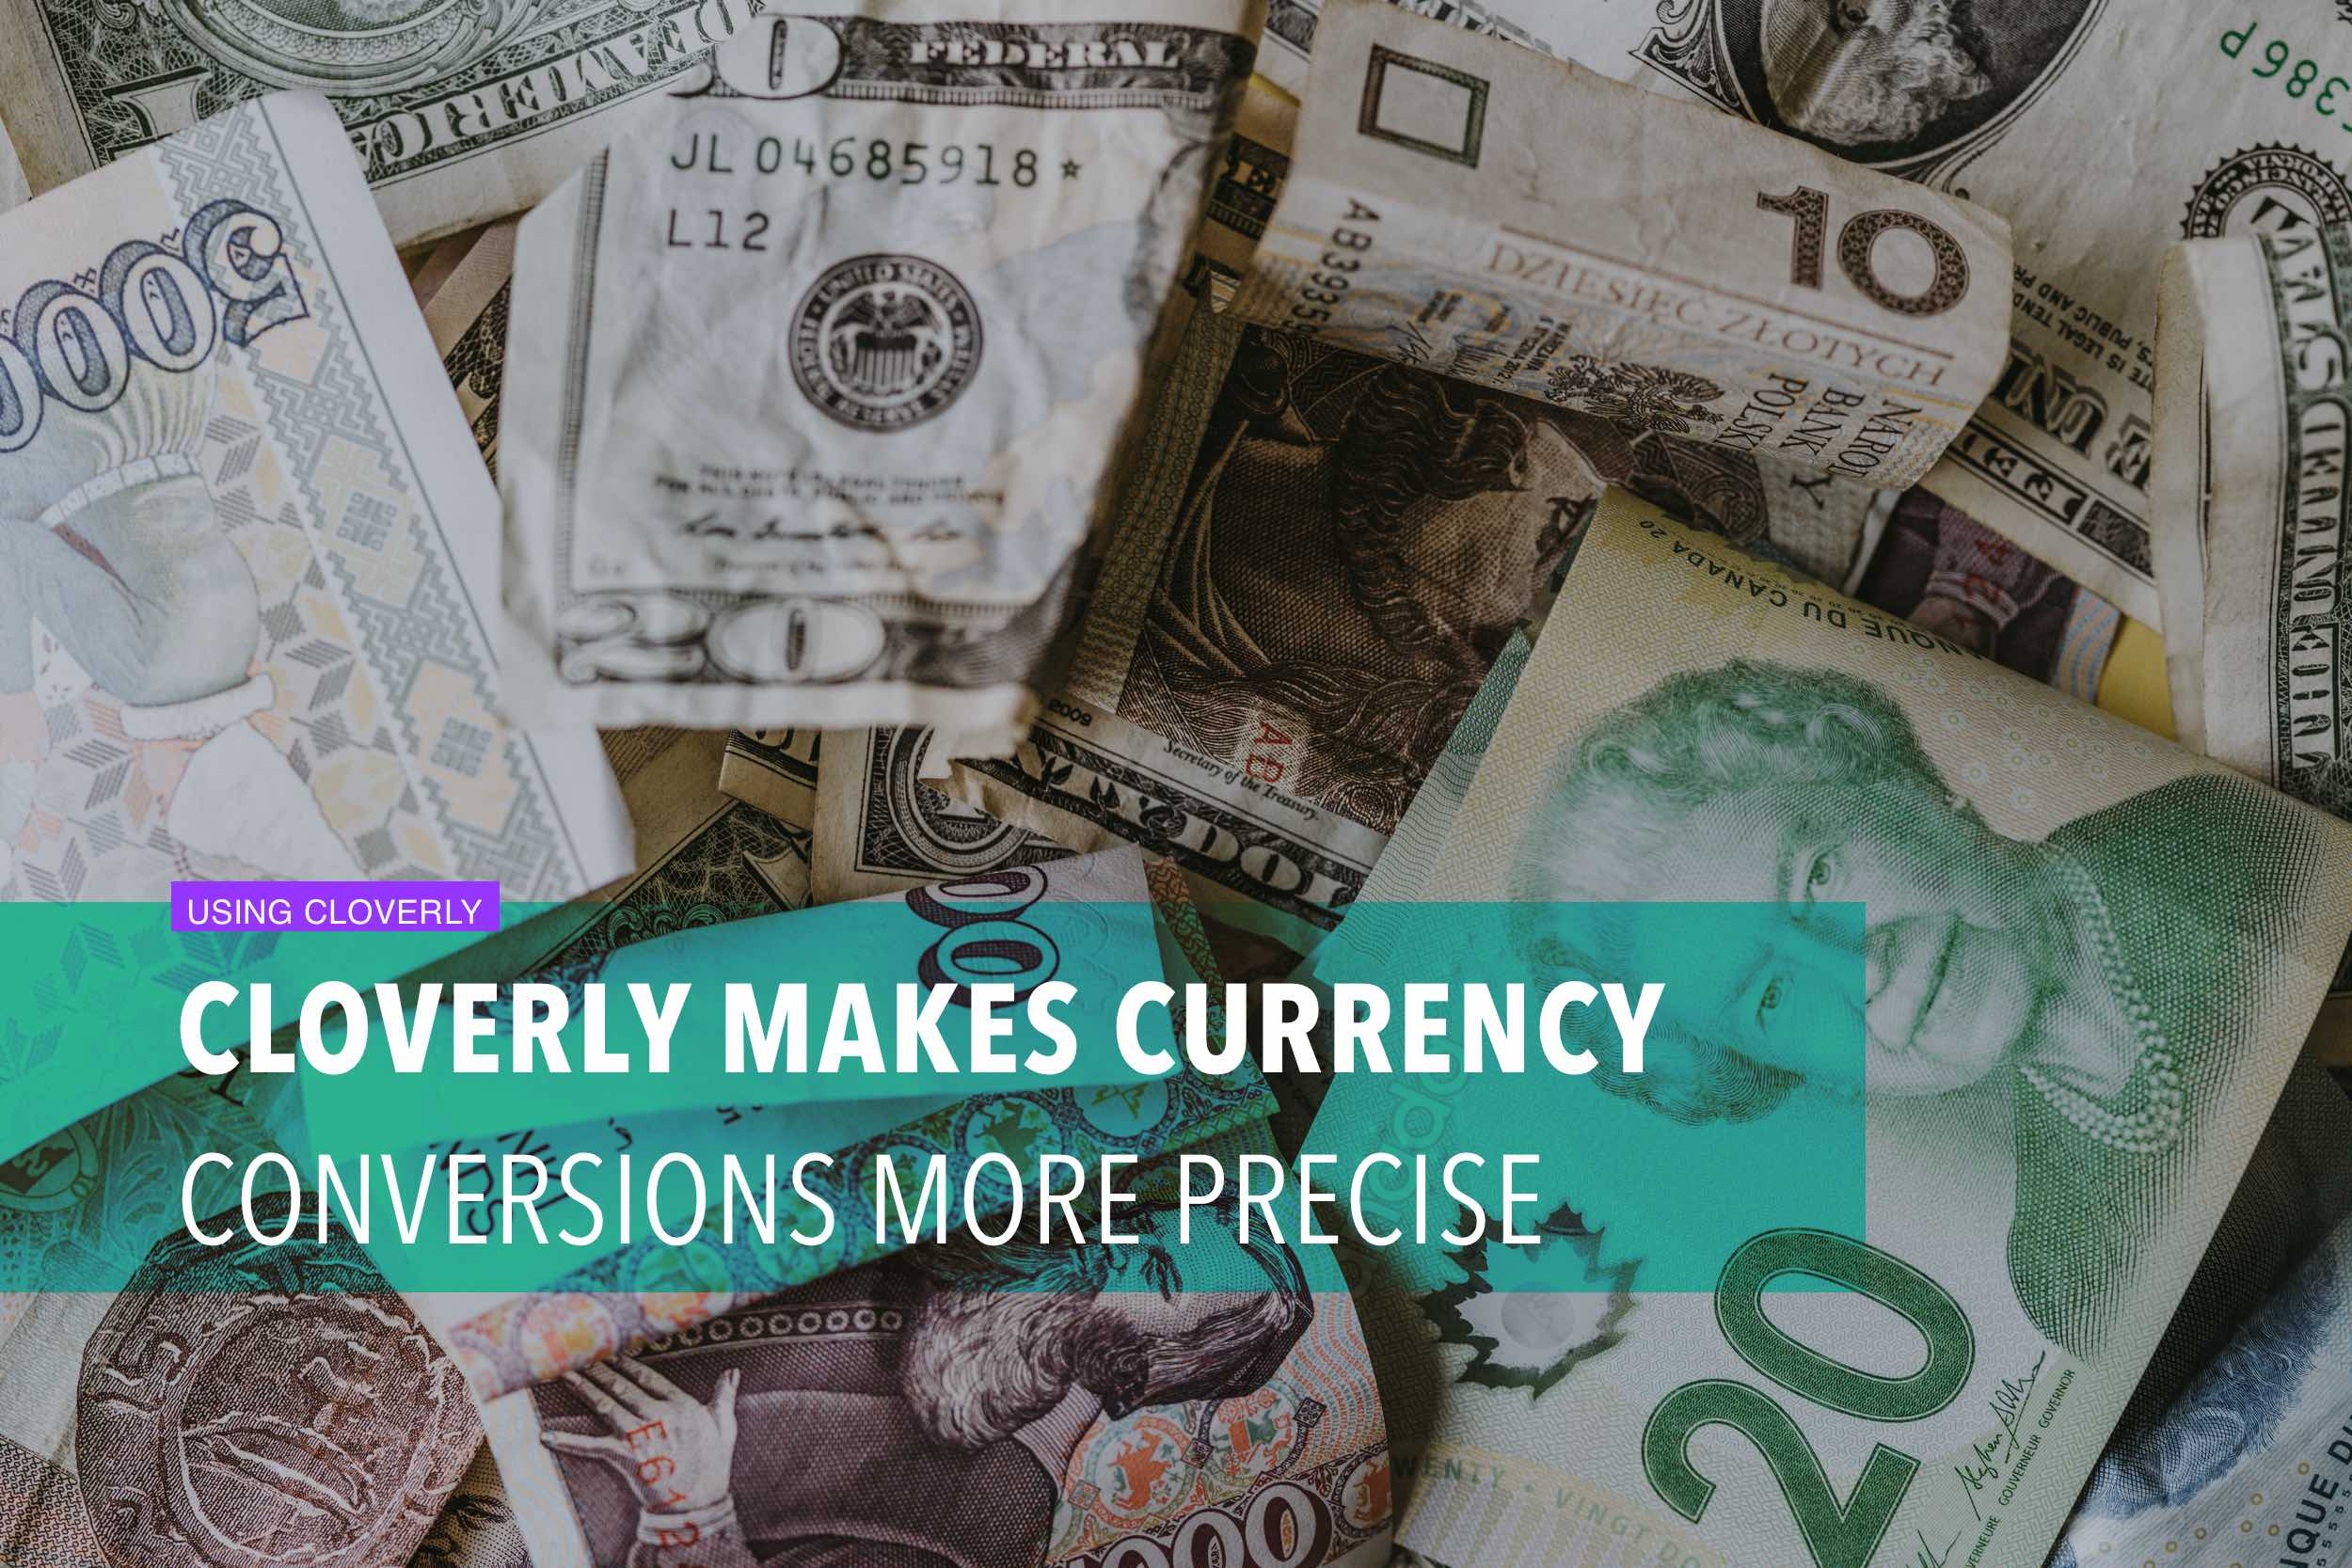 Cloverly makes currency conversions more precise